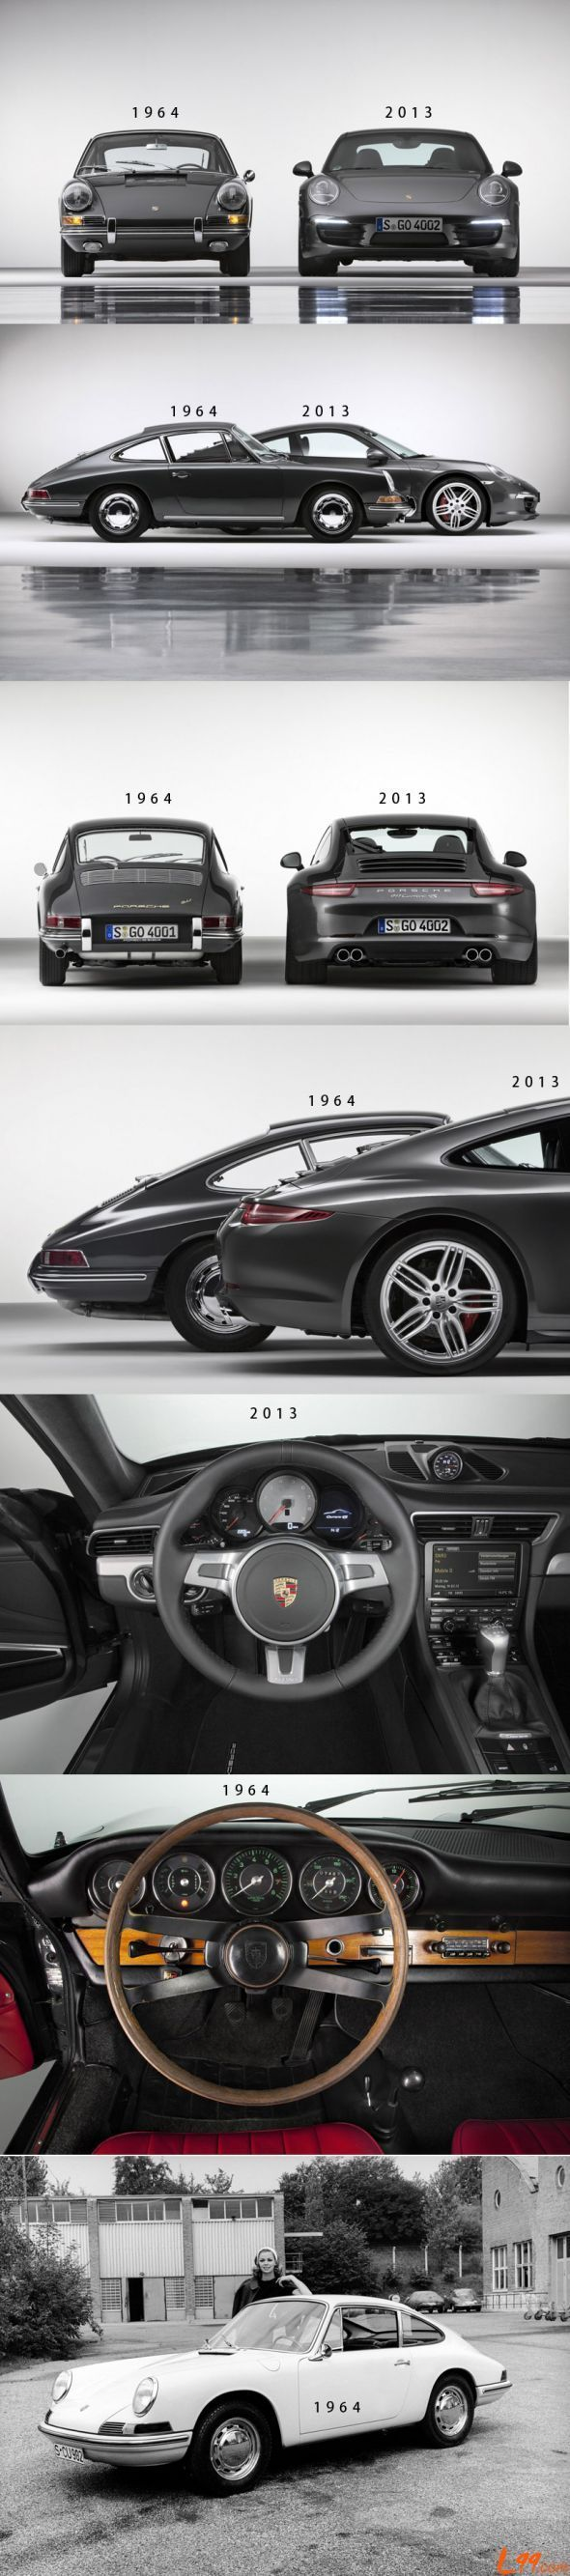 #Porsche 911 ~ 1964 vs 2013. Which would your choice be? #OldvsNew